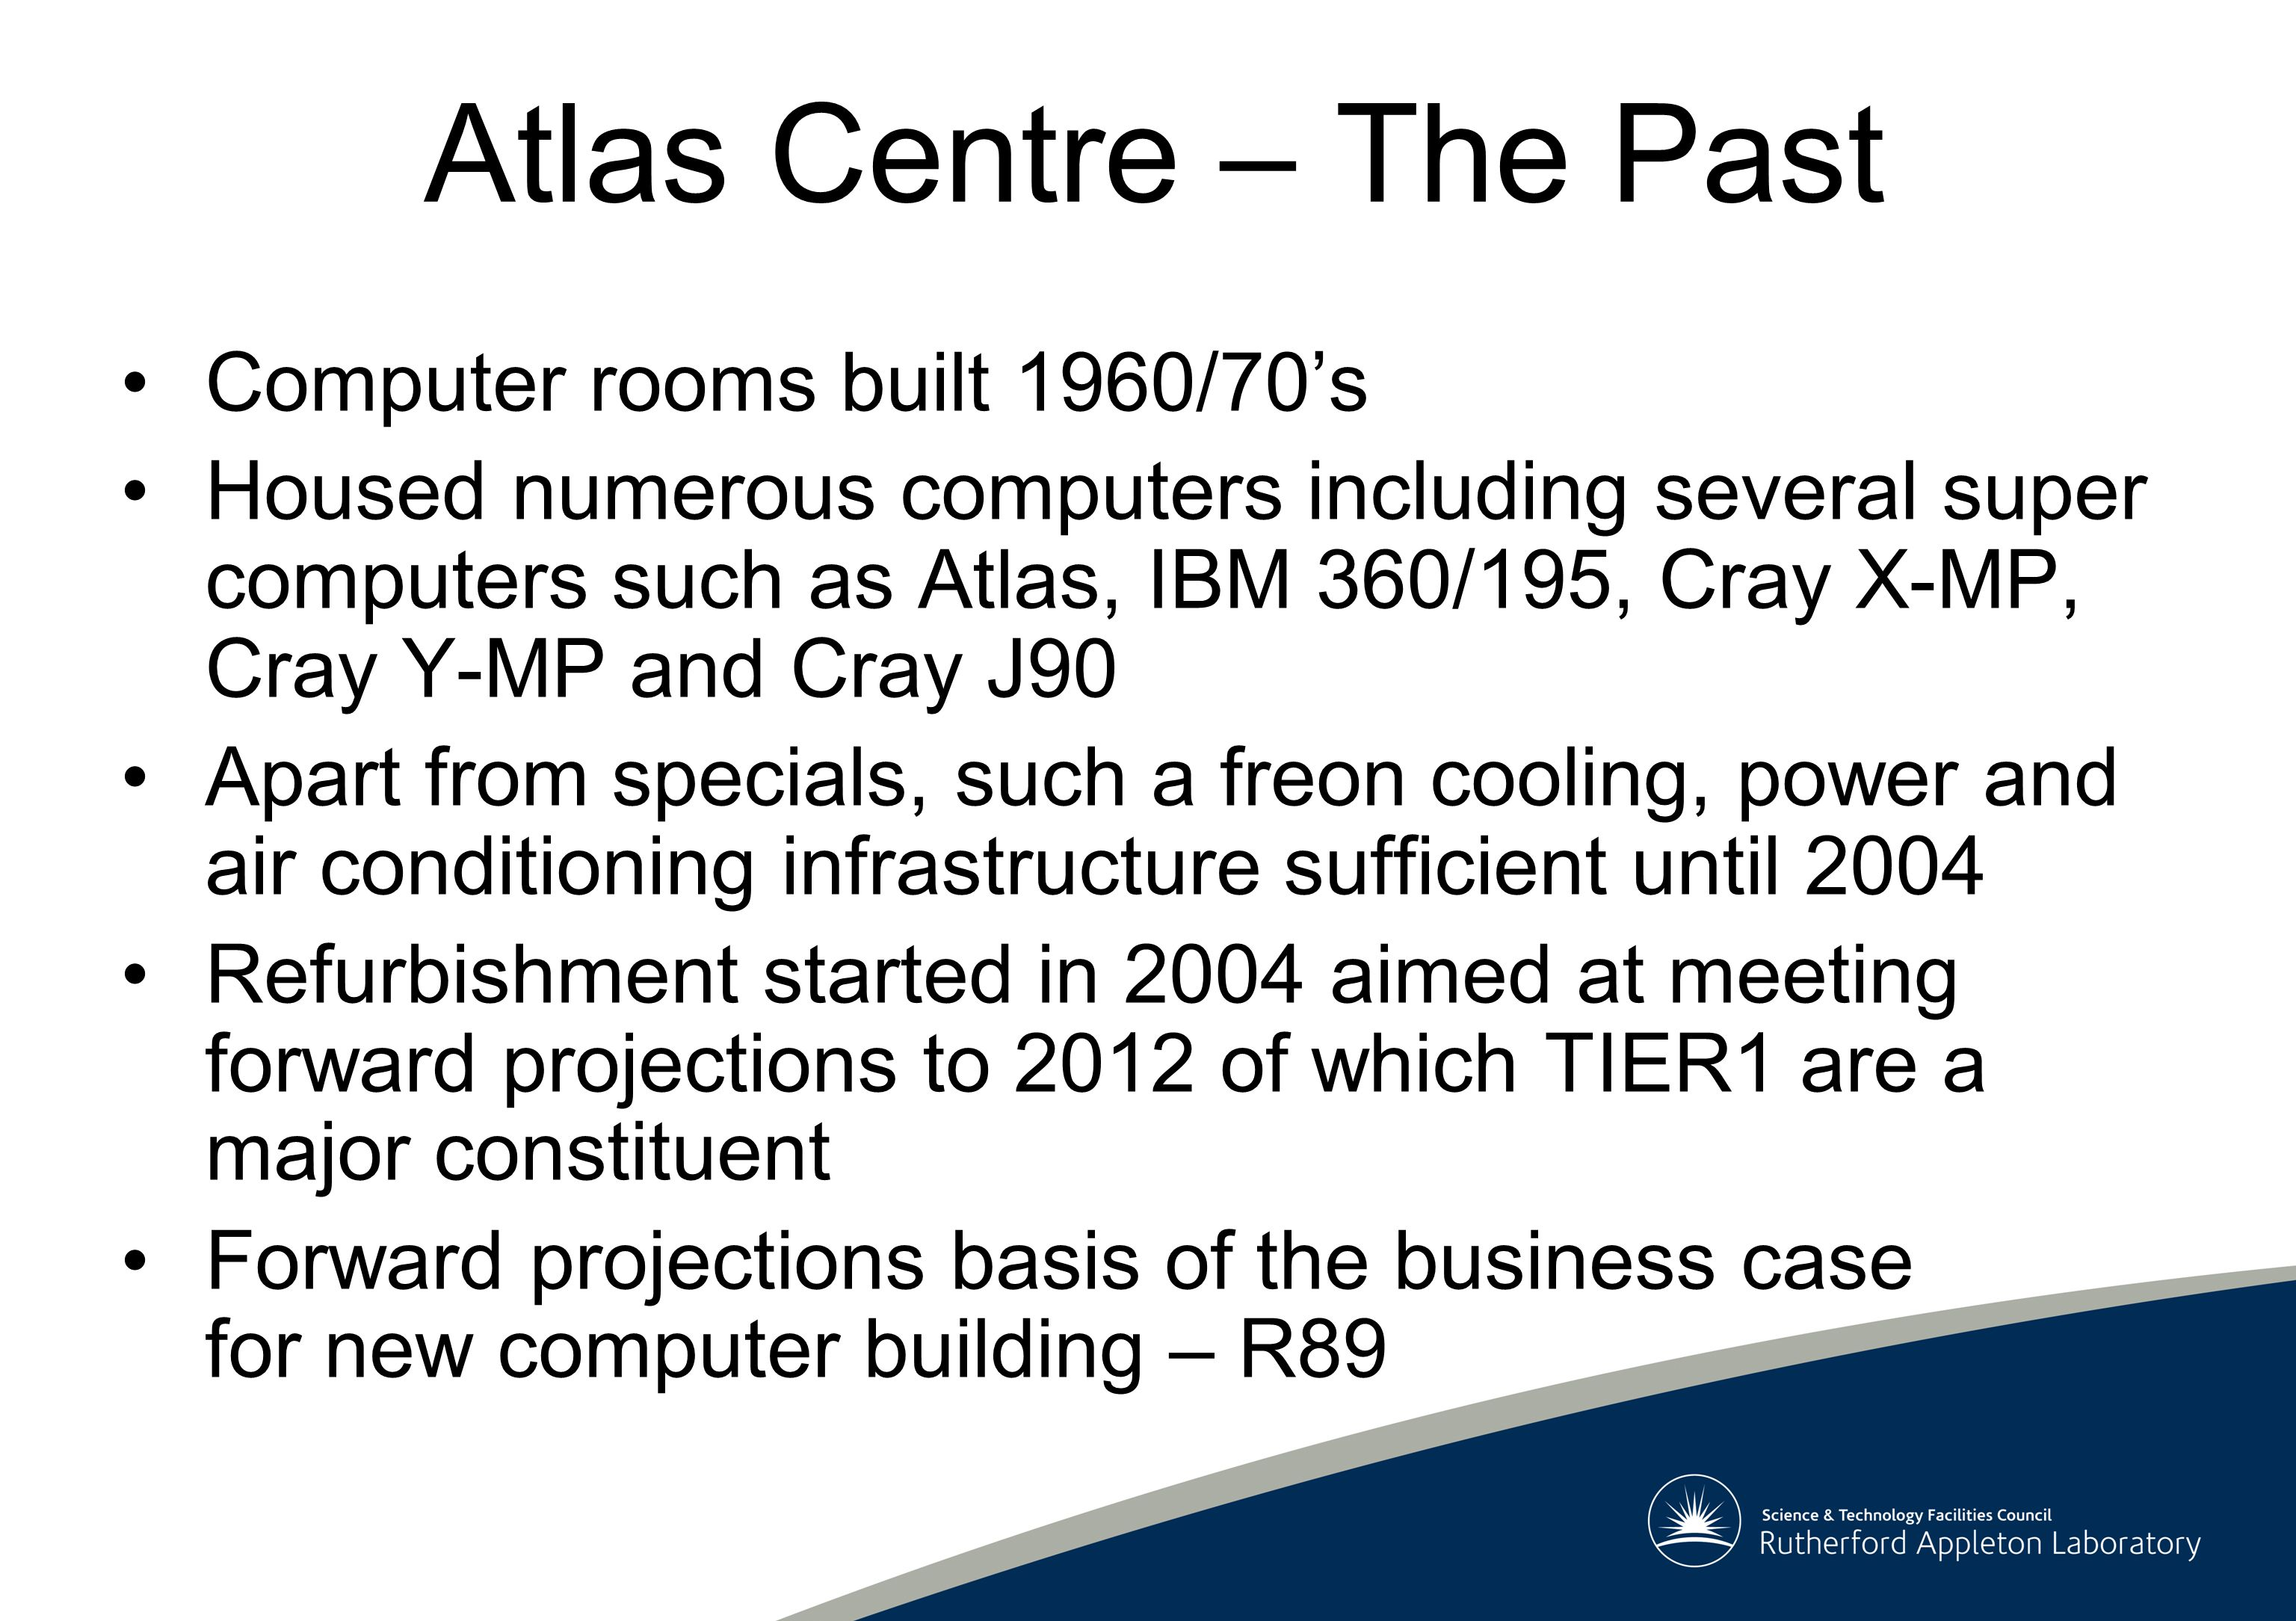 Atlas Centre Refurbishment Air conditioning system refurbished to improve efficiency and reliability but still needs bi-annual maintenance shutdown New computer room access control system installed and security improved Fire detection system modernised but no fire suppression added.